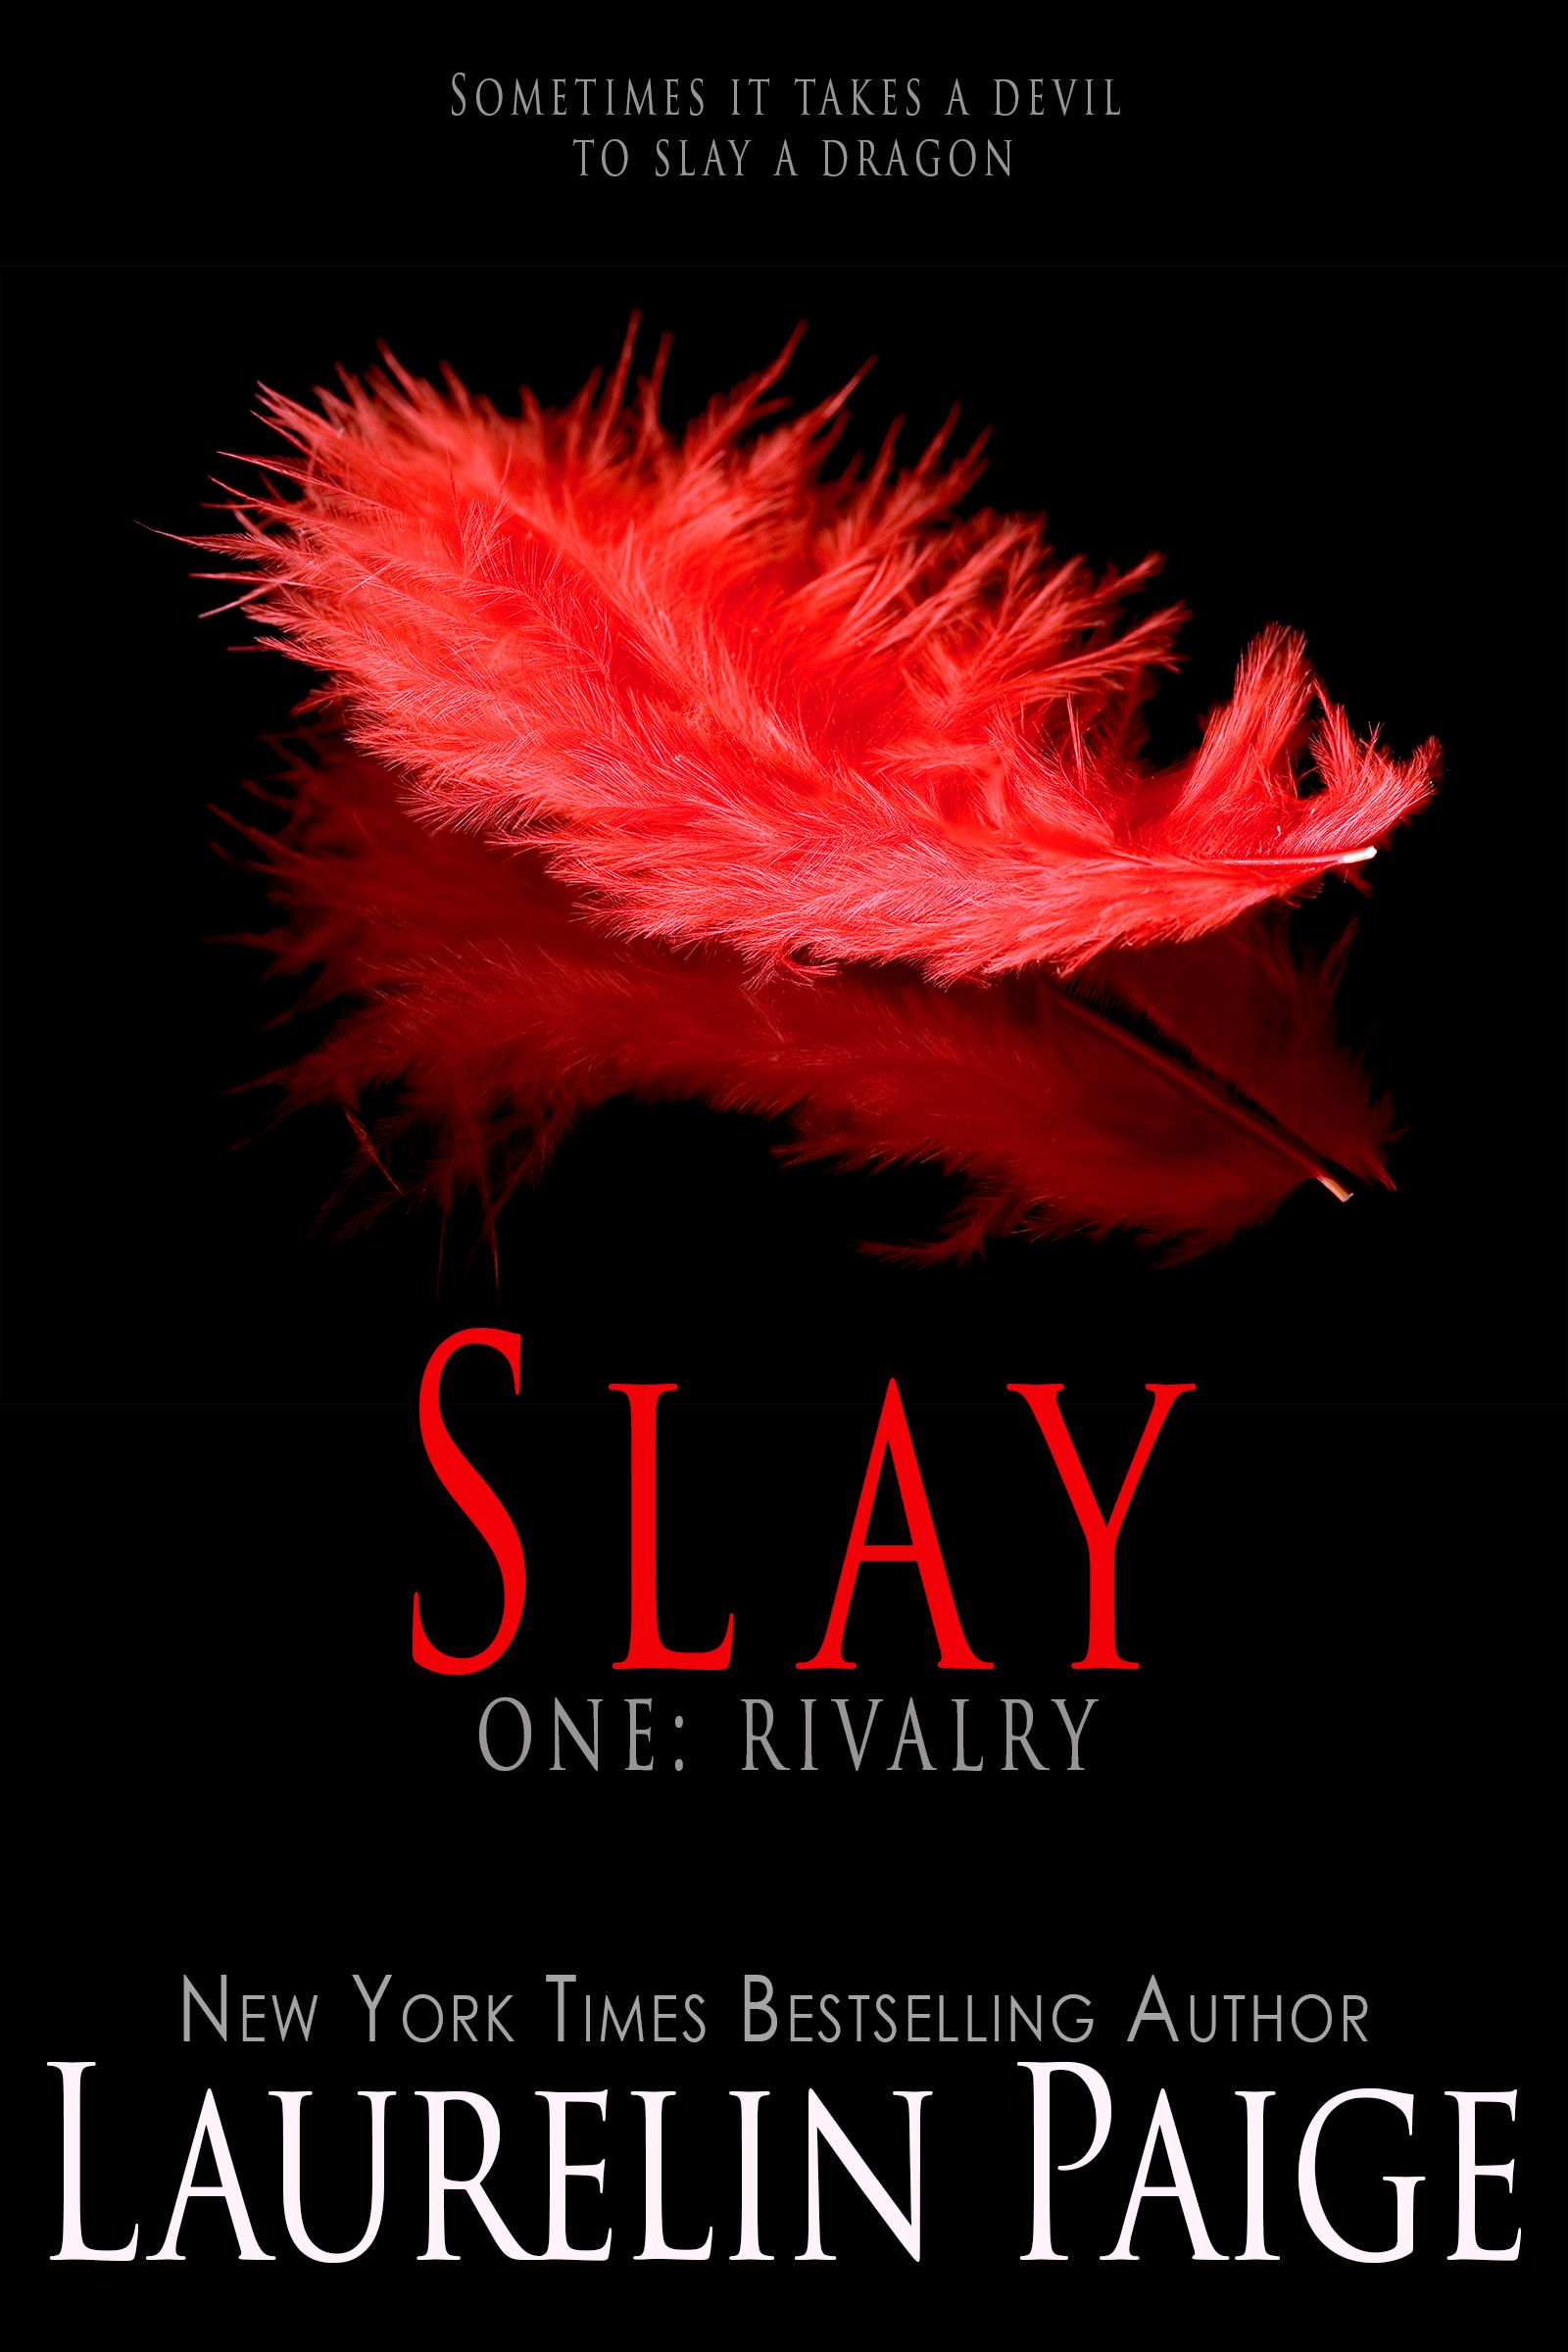 Pin On Slay One Rivalry By Laurelin Paige